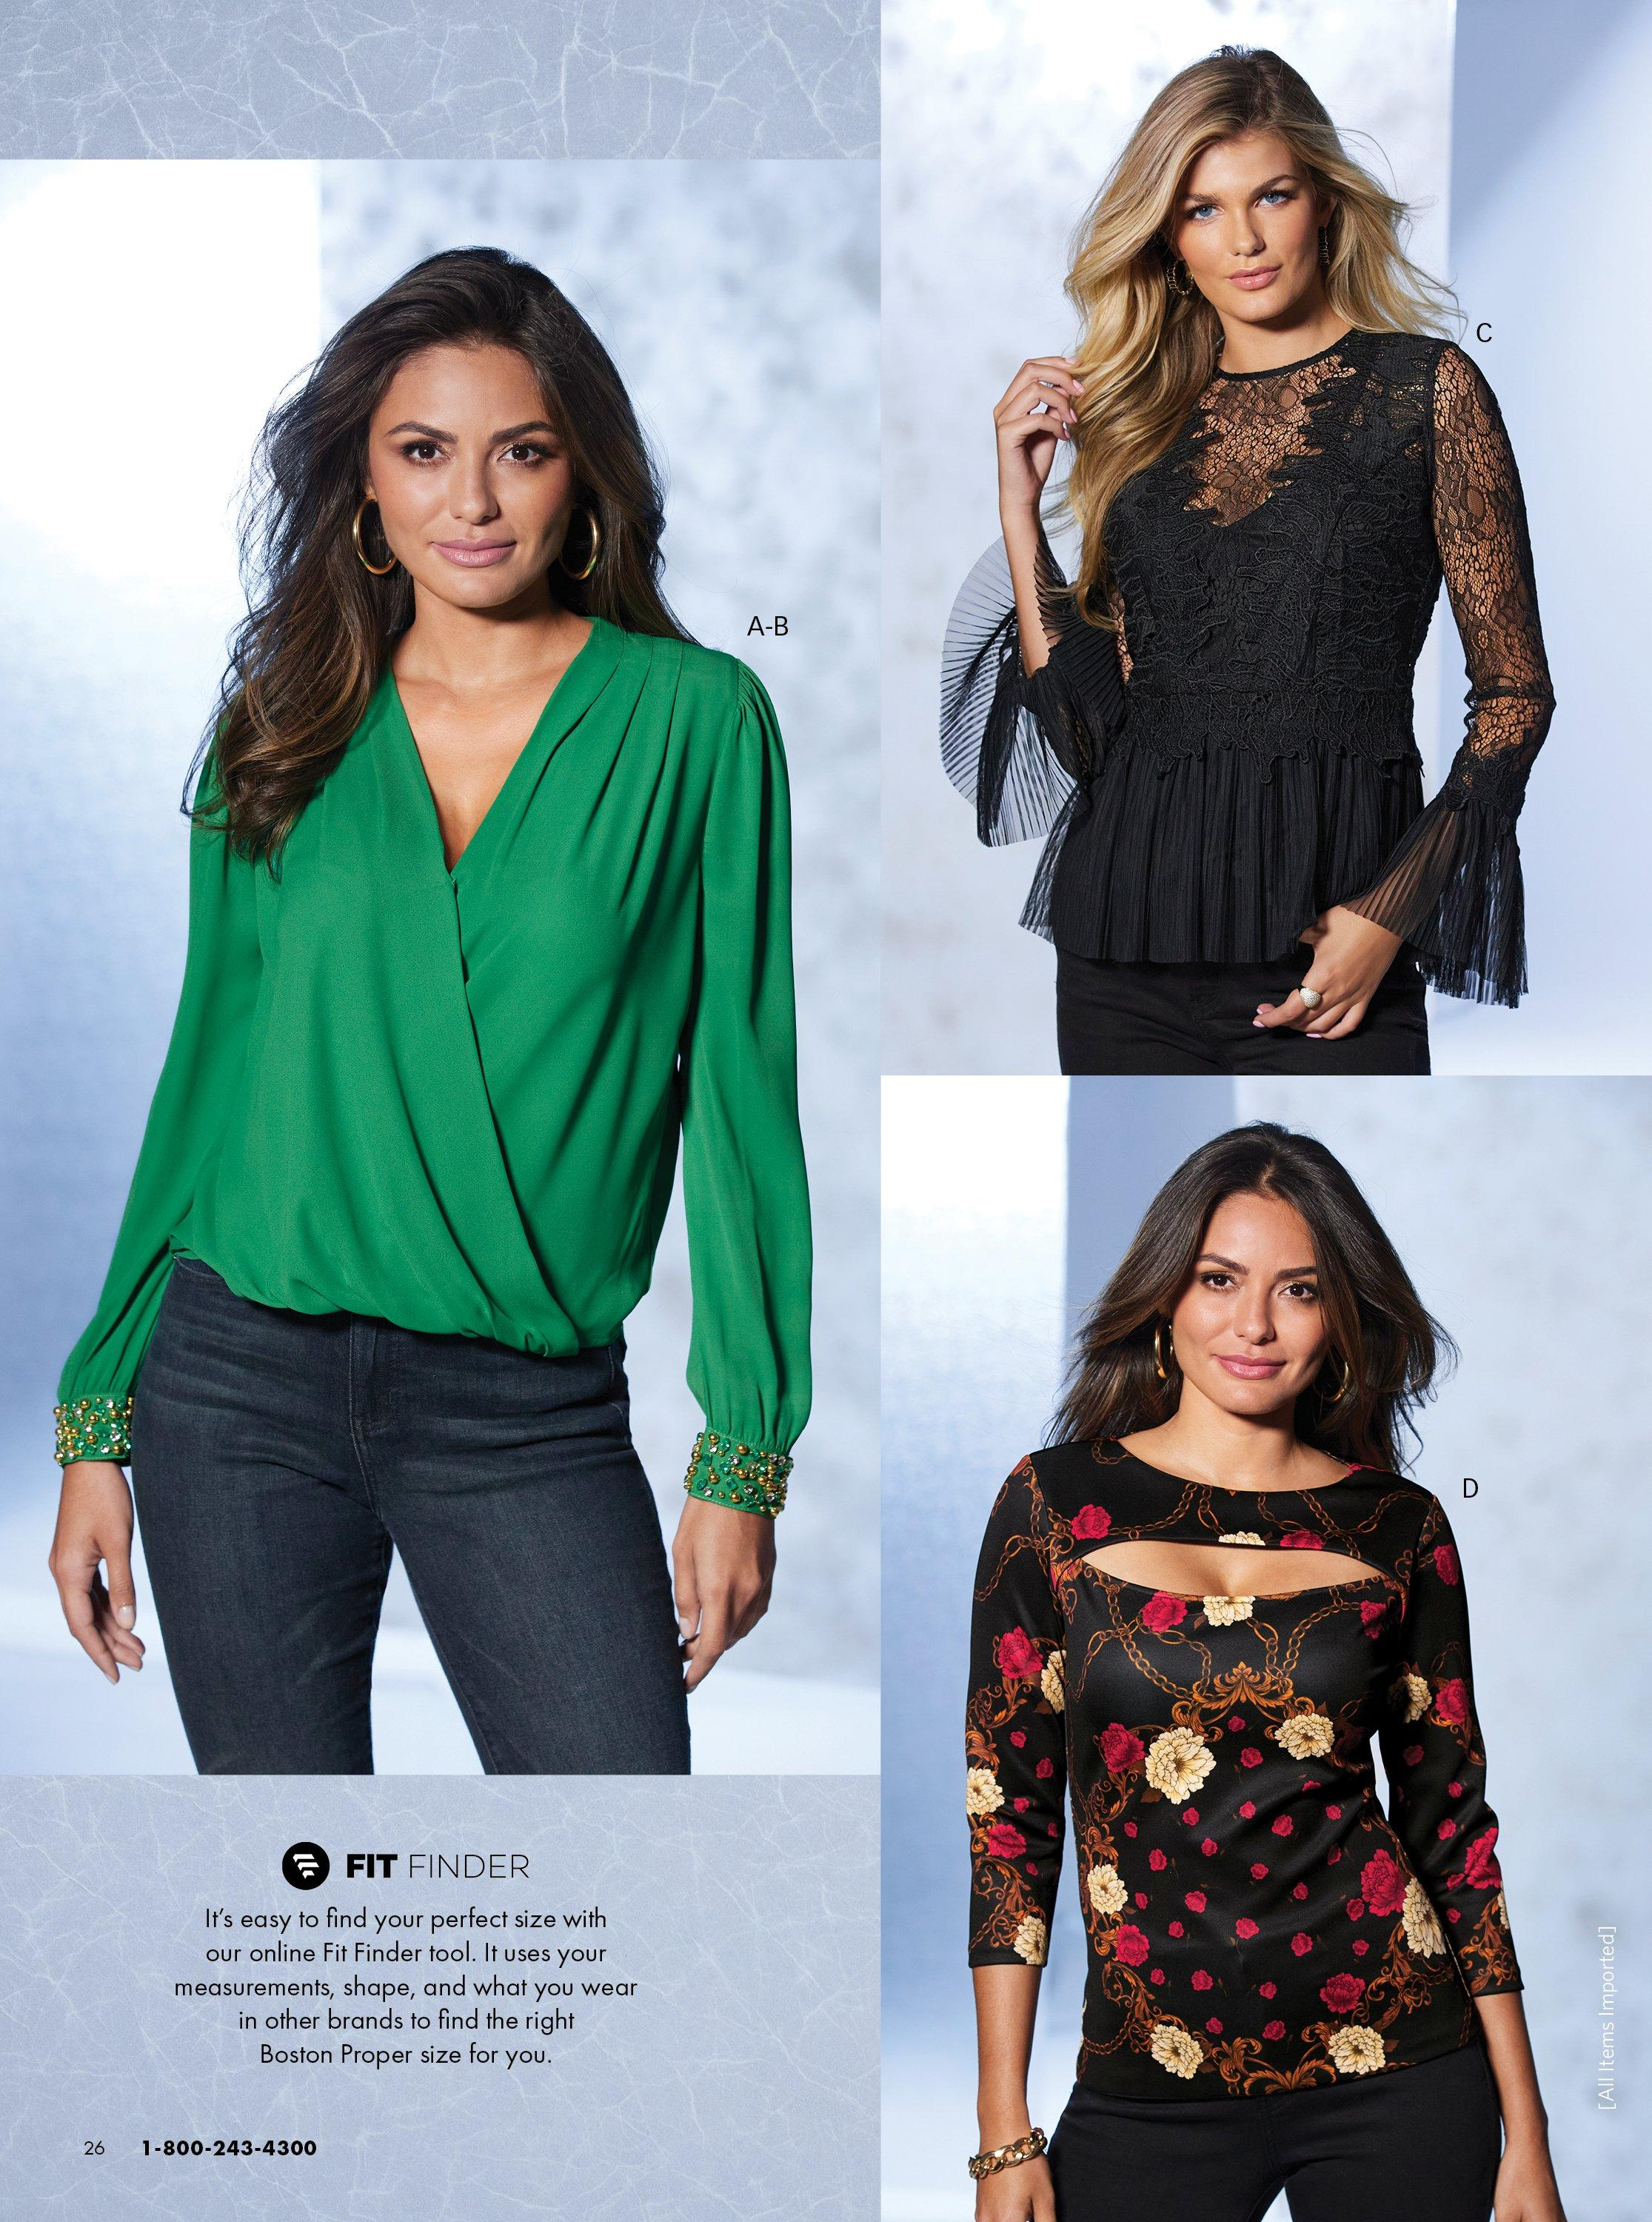 left model wearing a green surplice top with jeweled cuffs and jeans. top right model wearing a black lace peplum flare sleeve top. bottom right model wearing a black and red floral cutout long-sleeve top.